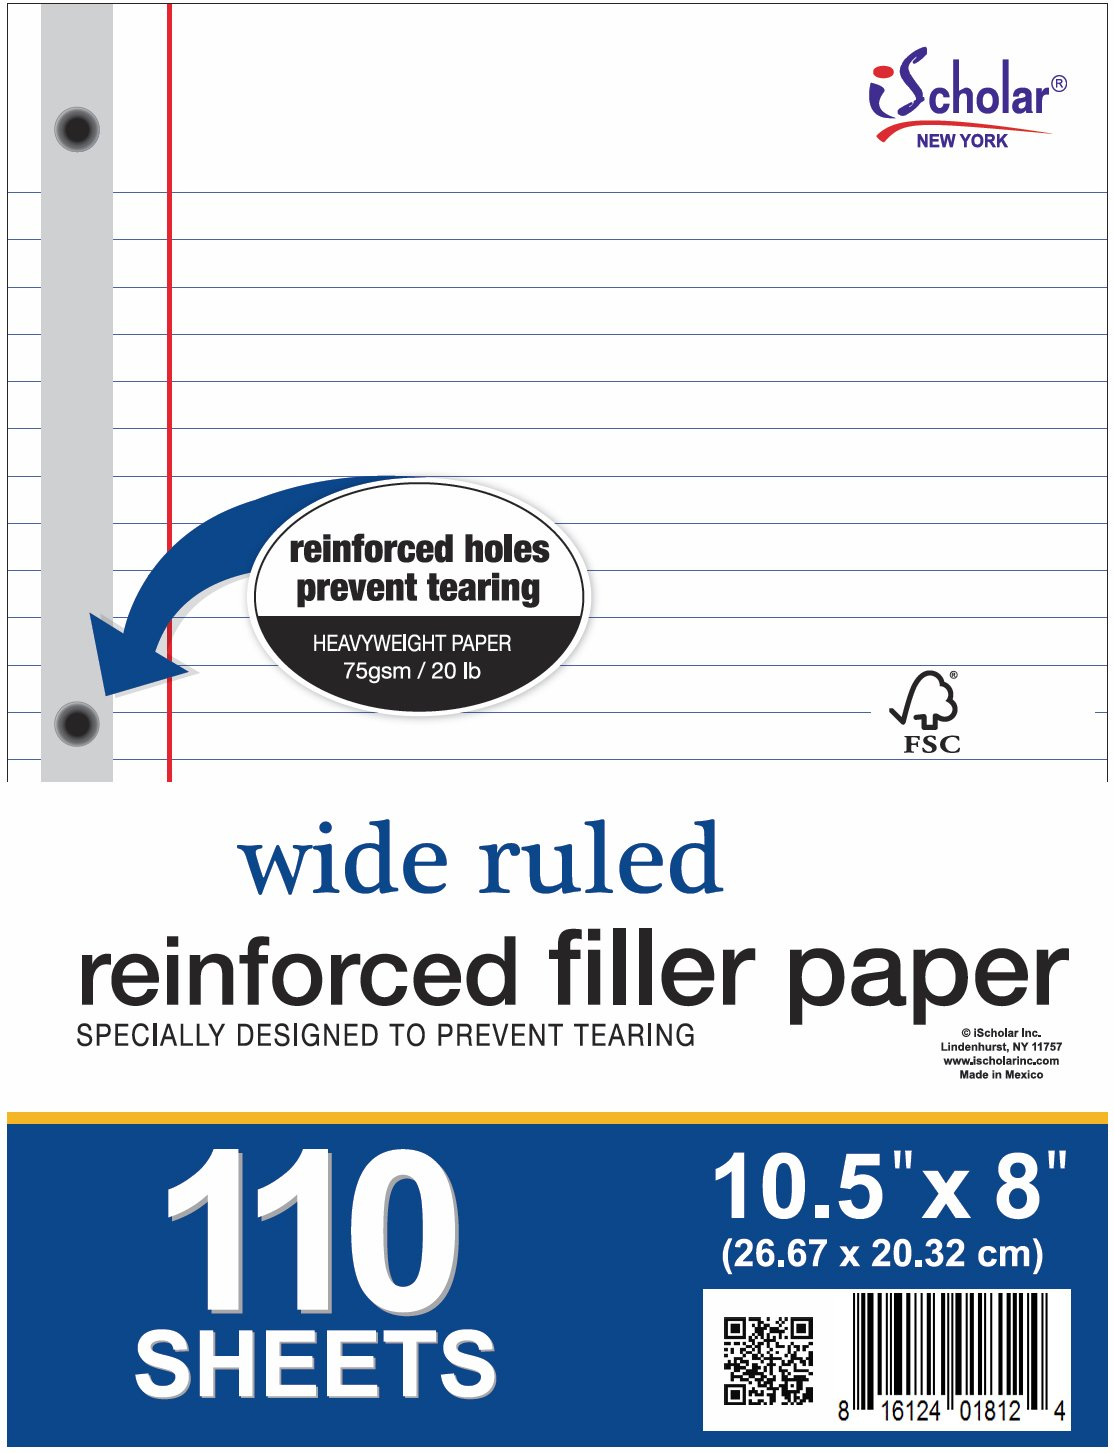 iScholar Reinforced Filler Paper, Wide Ruled, White, 110 Sheets, 8 x 10.5 Inches (83100) by iScholar